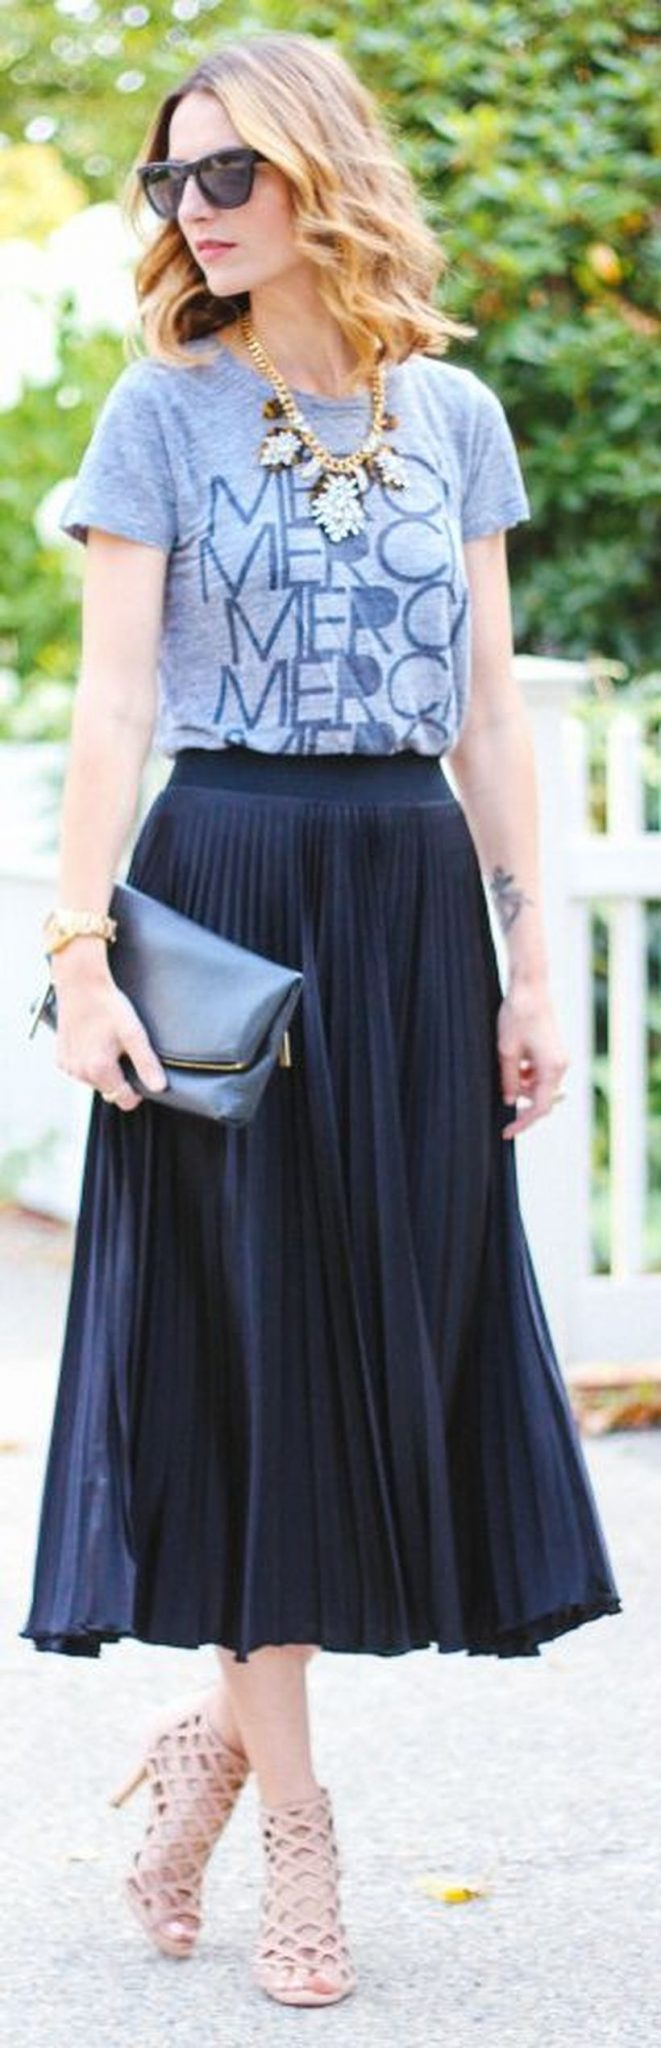 Cool tshirt and skirt for everyday outfits 40